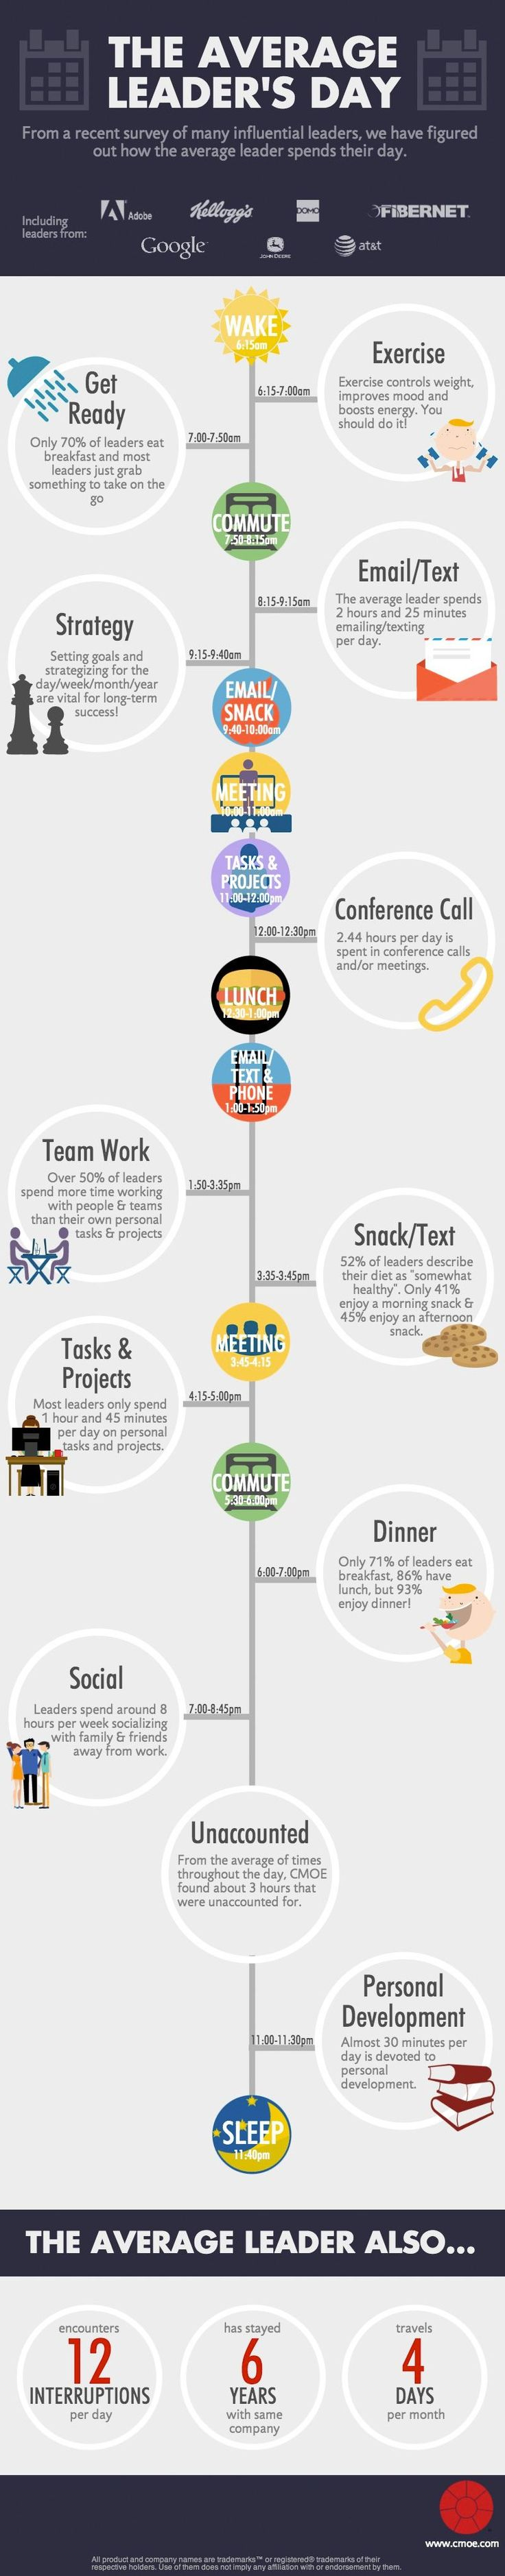 How Fortune 500 Leaders Spend Every Minute of the Day (Infographic)